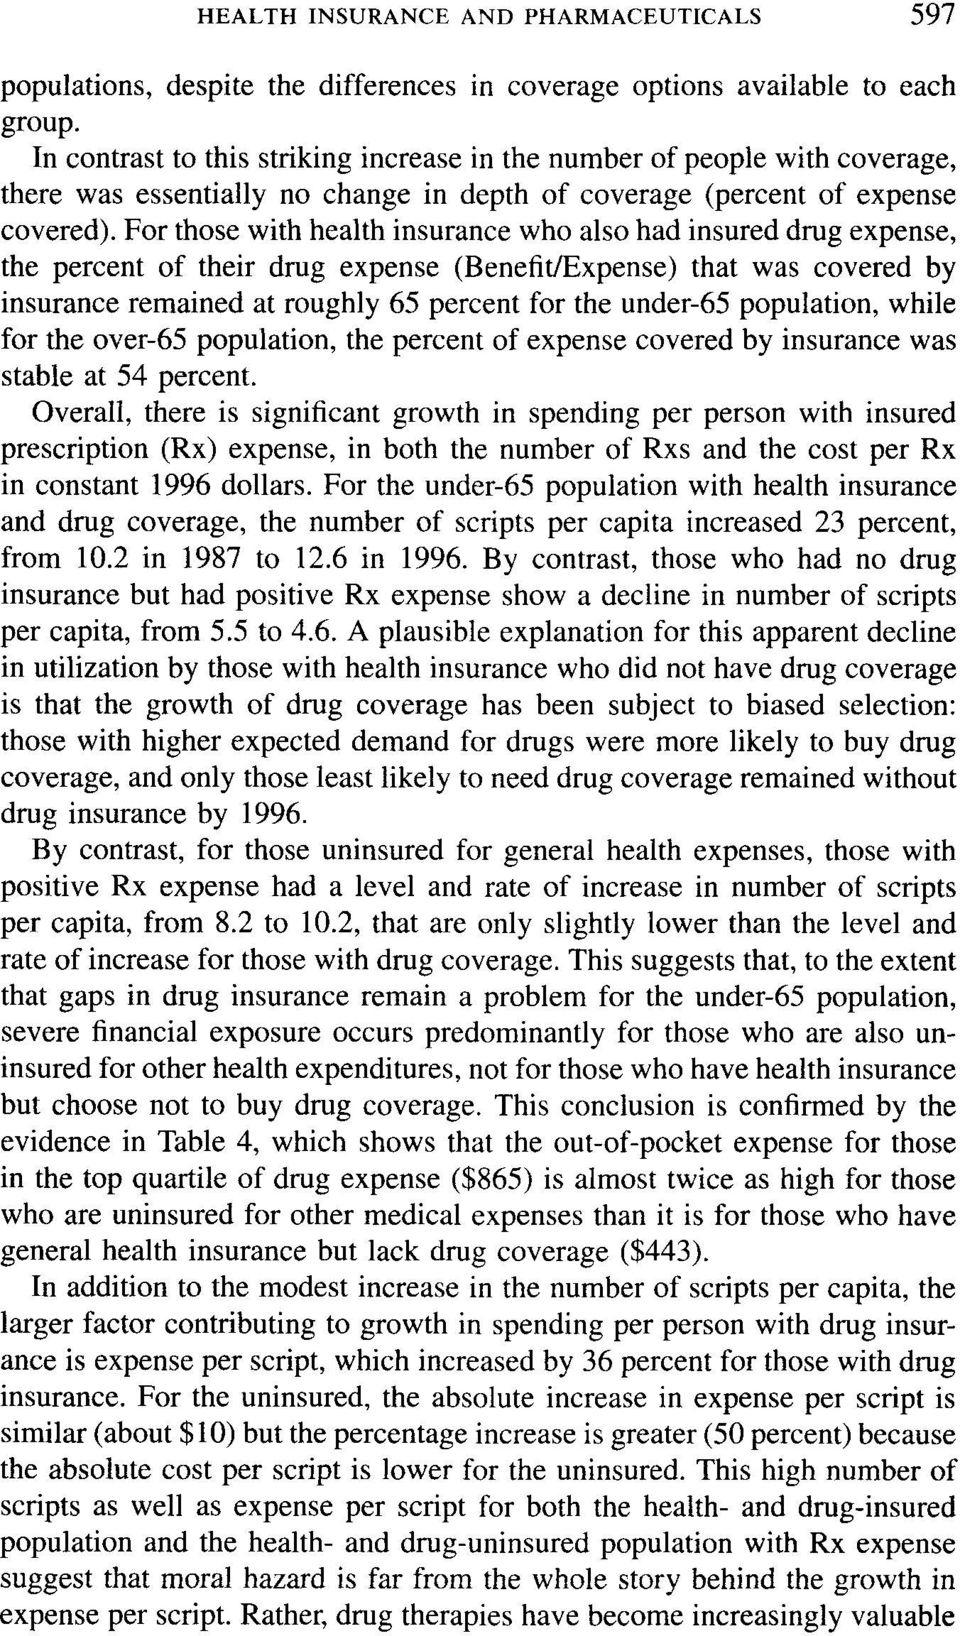 For those with health insurance who also had insured drug expense, the percent of their drug expense (Benefit/Expense) that was covered by insurance remained at roughly 65 percent for the under-65